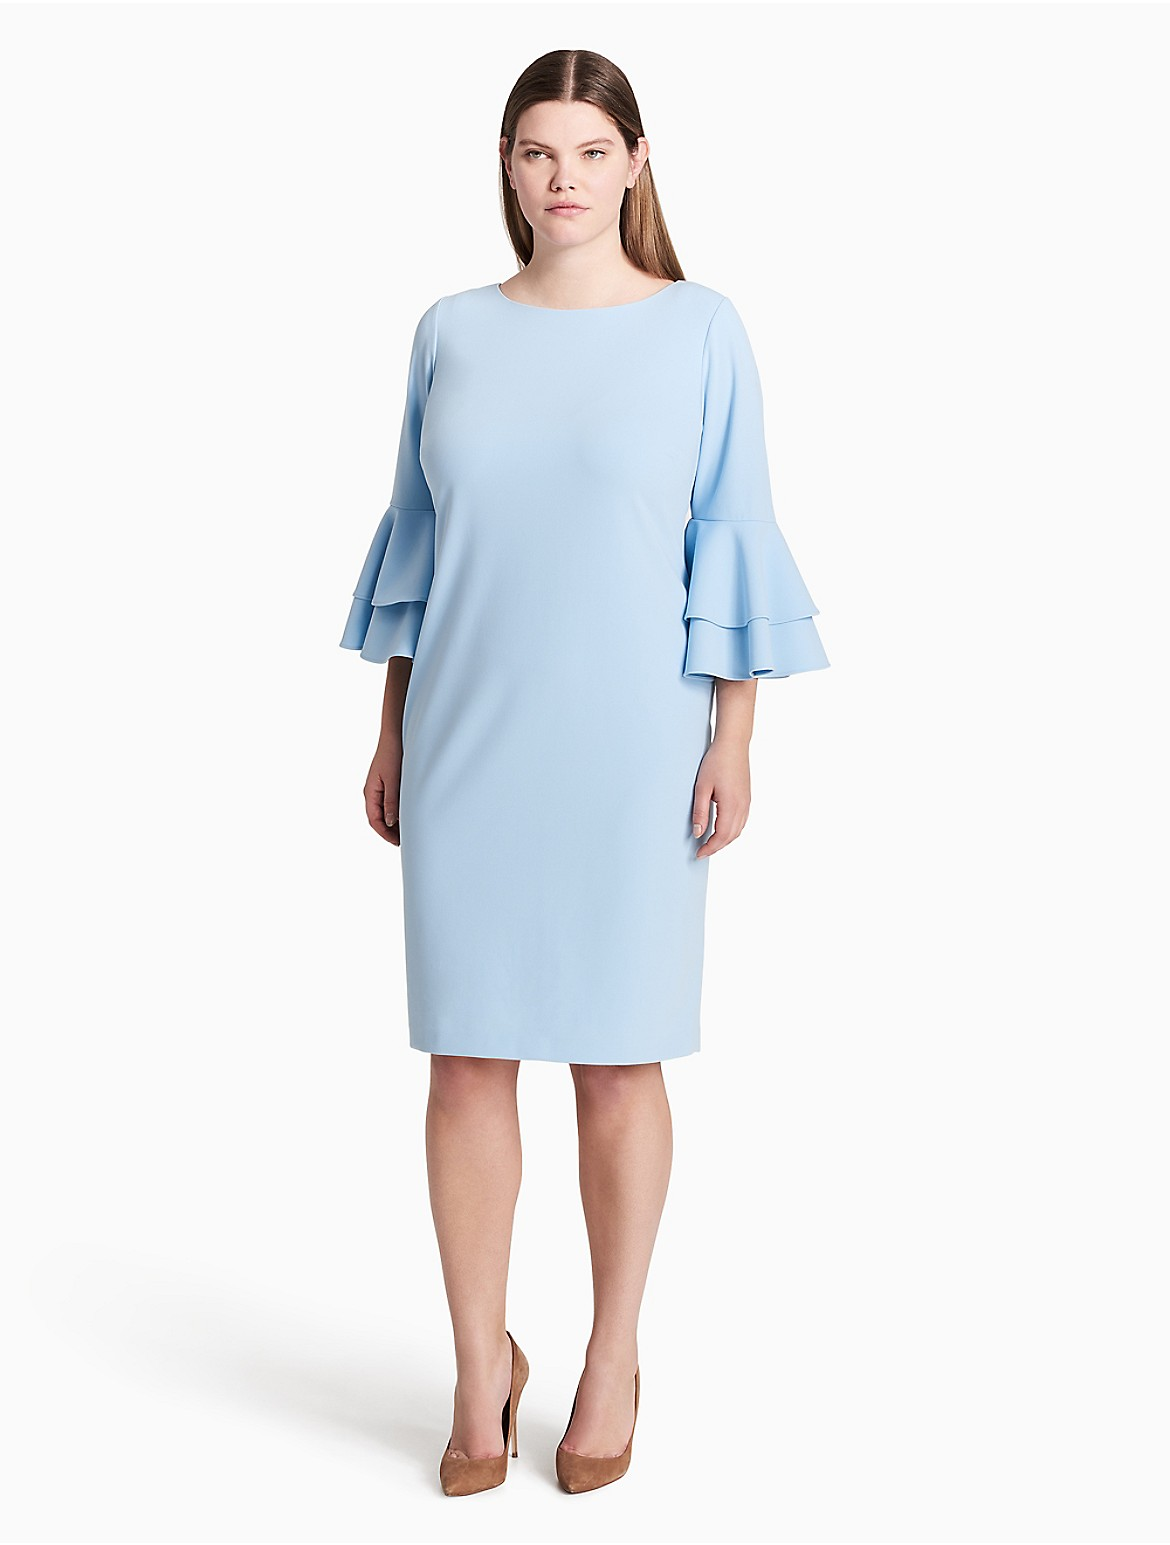 Plus Size Colorblock Bell Sleeve Dress Calvin Klein